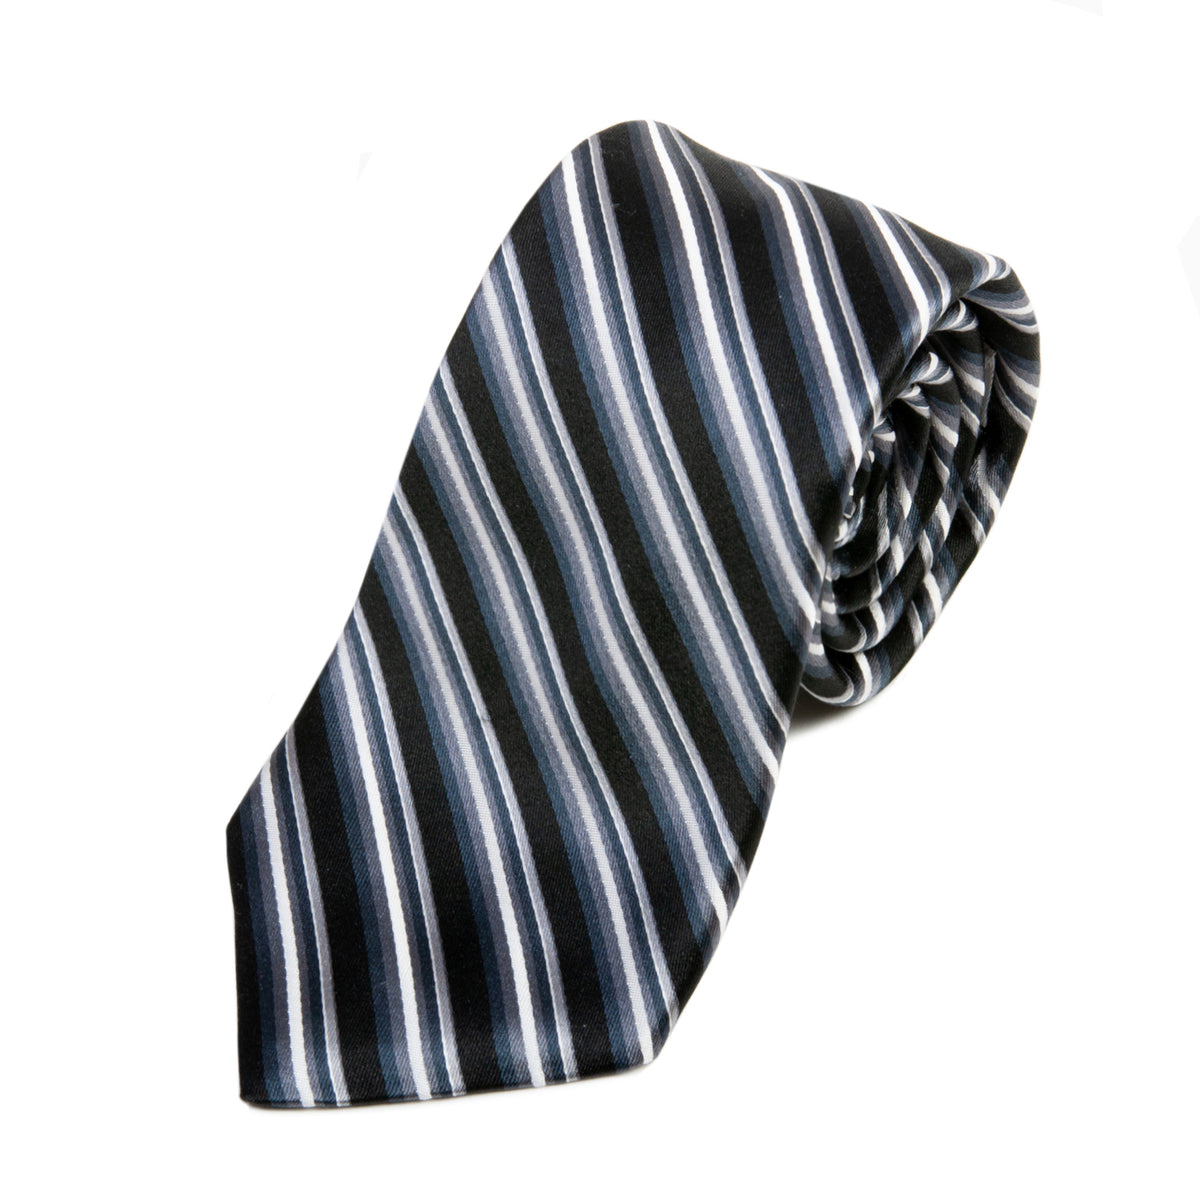 Sam Abouhassan Dark Grey Stripe Italian Silk Tie for Luxmrkt.com Menswear Consignment Edmonton